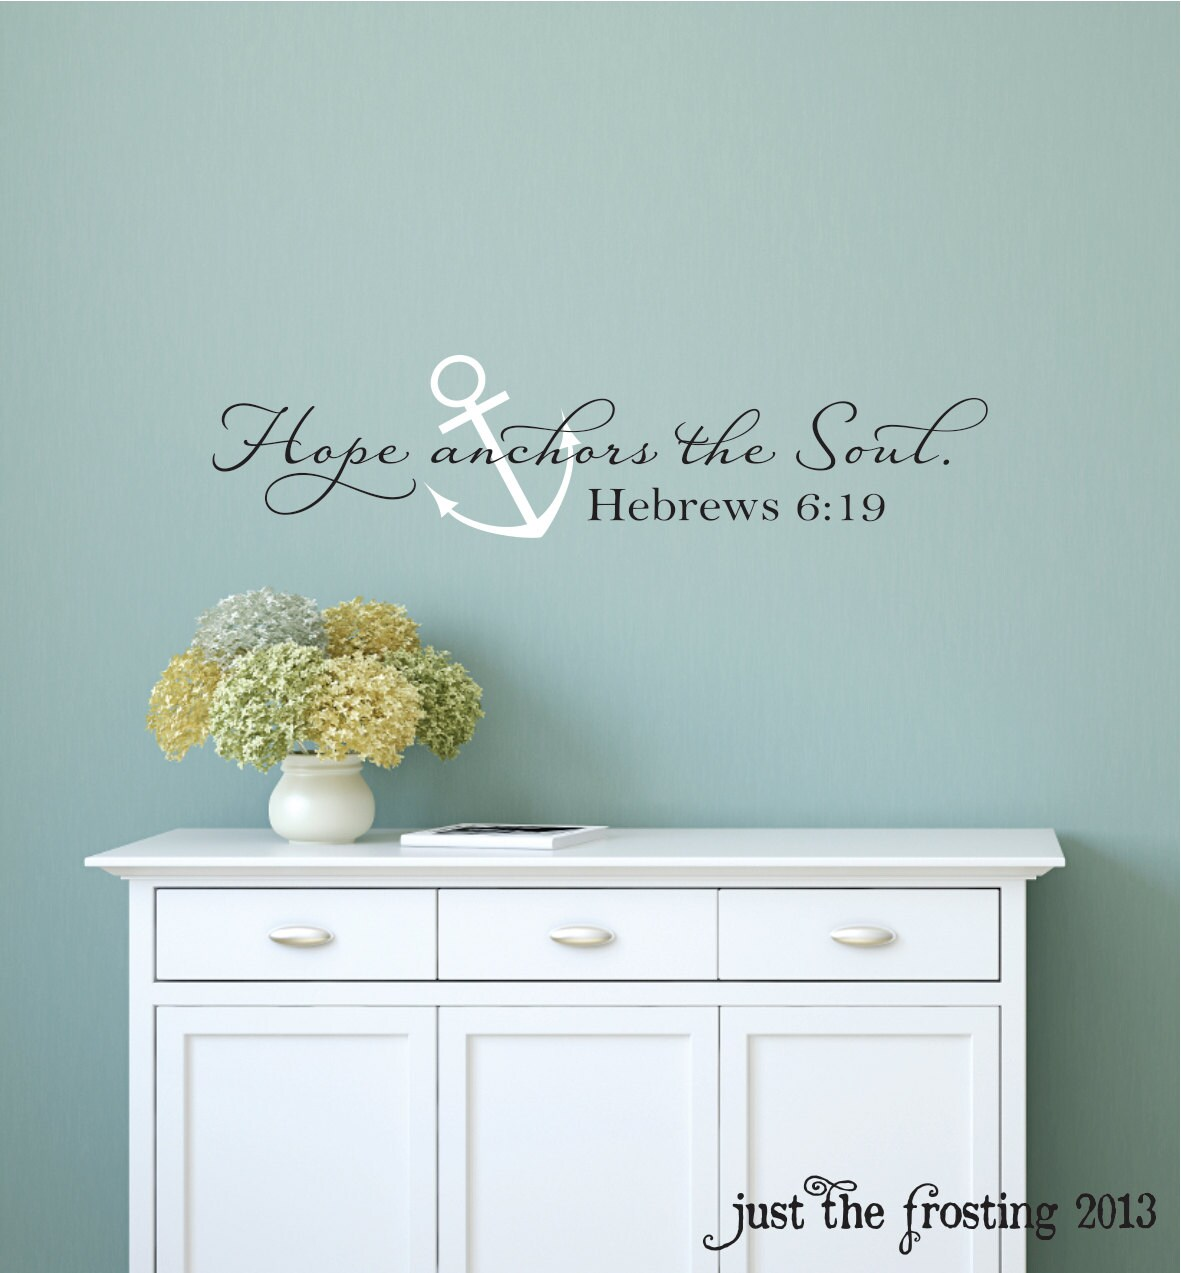 Hope anchors the soul wall decal hebrews 619 vinyl wall description hope anchors the soul wall decal amipublicfo Image collections